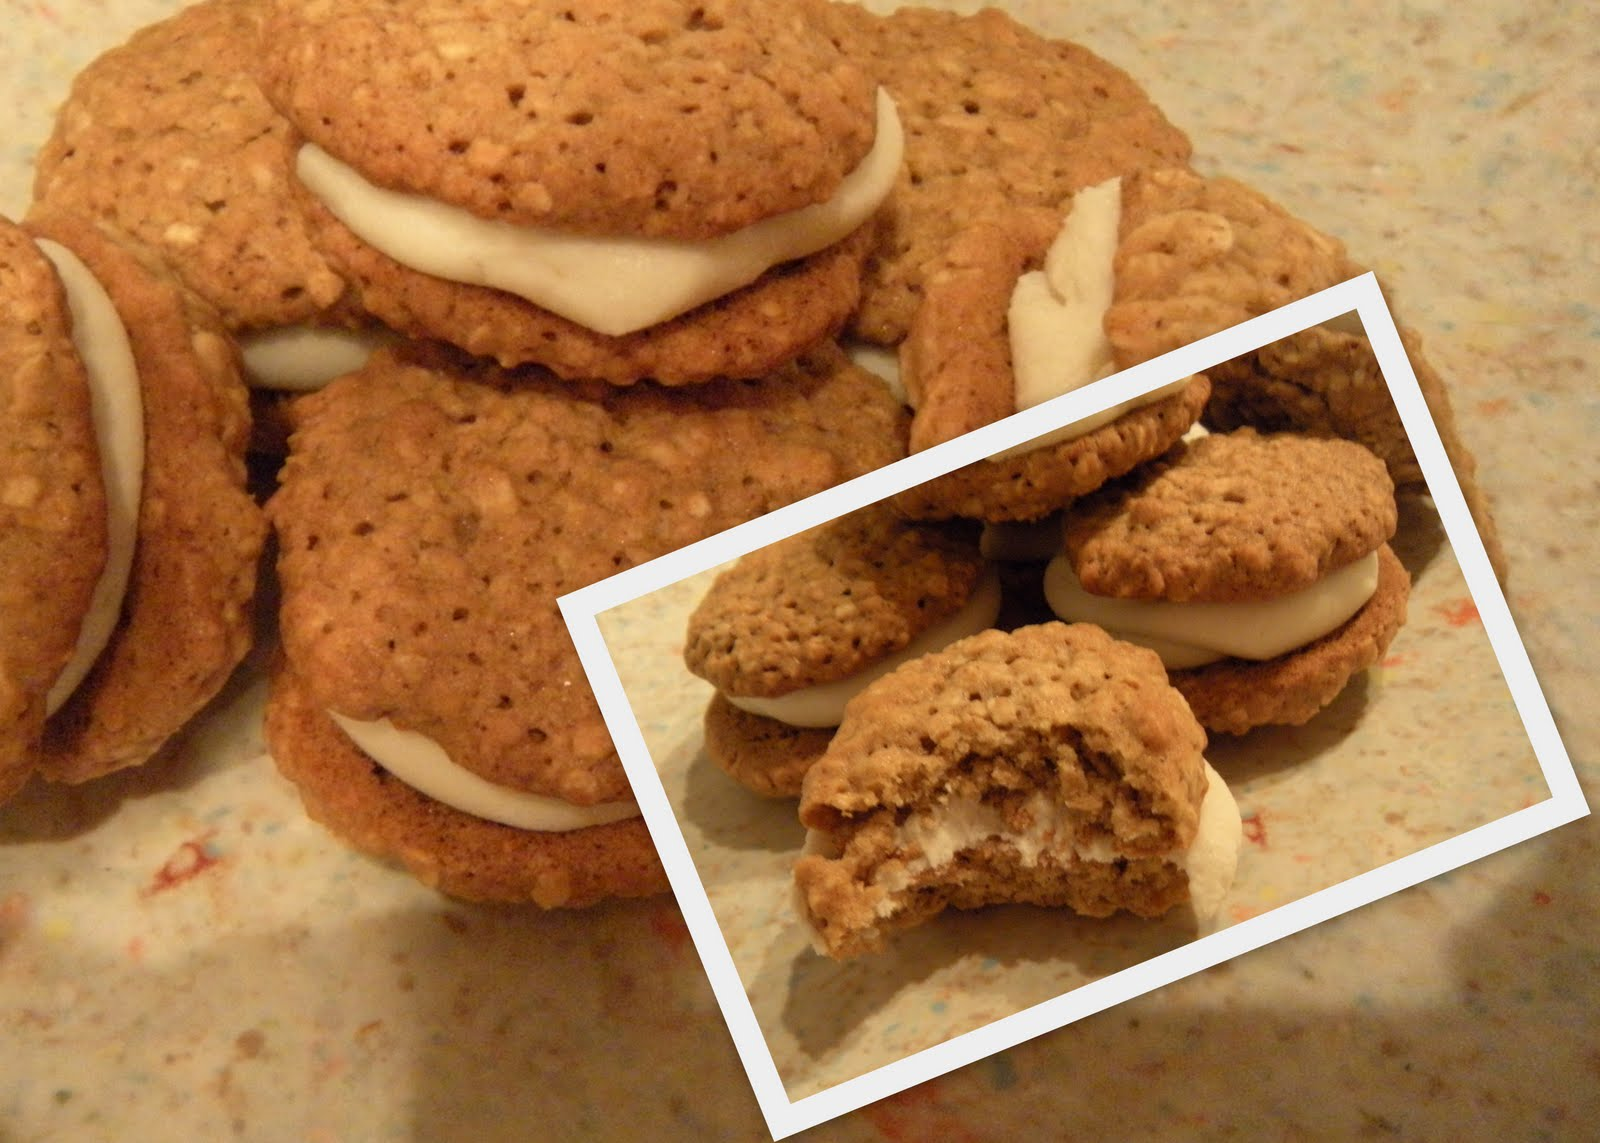 Whatcha Makin' Now?: Oatmeal Cream Pies (Whoopie Pies)